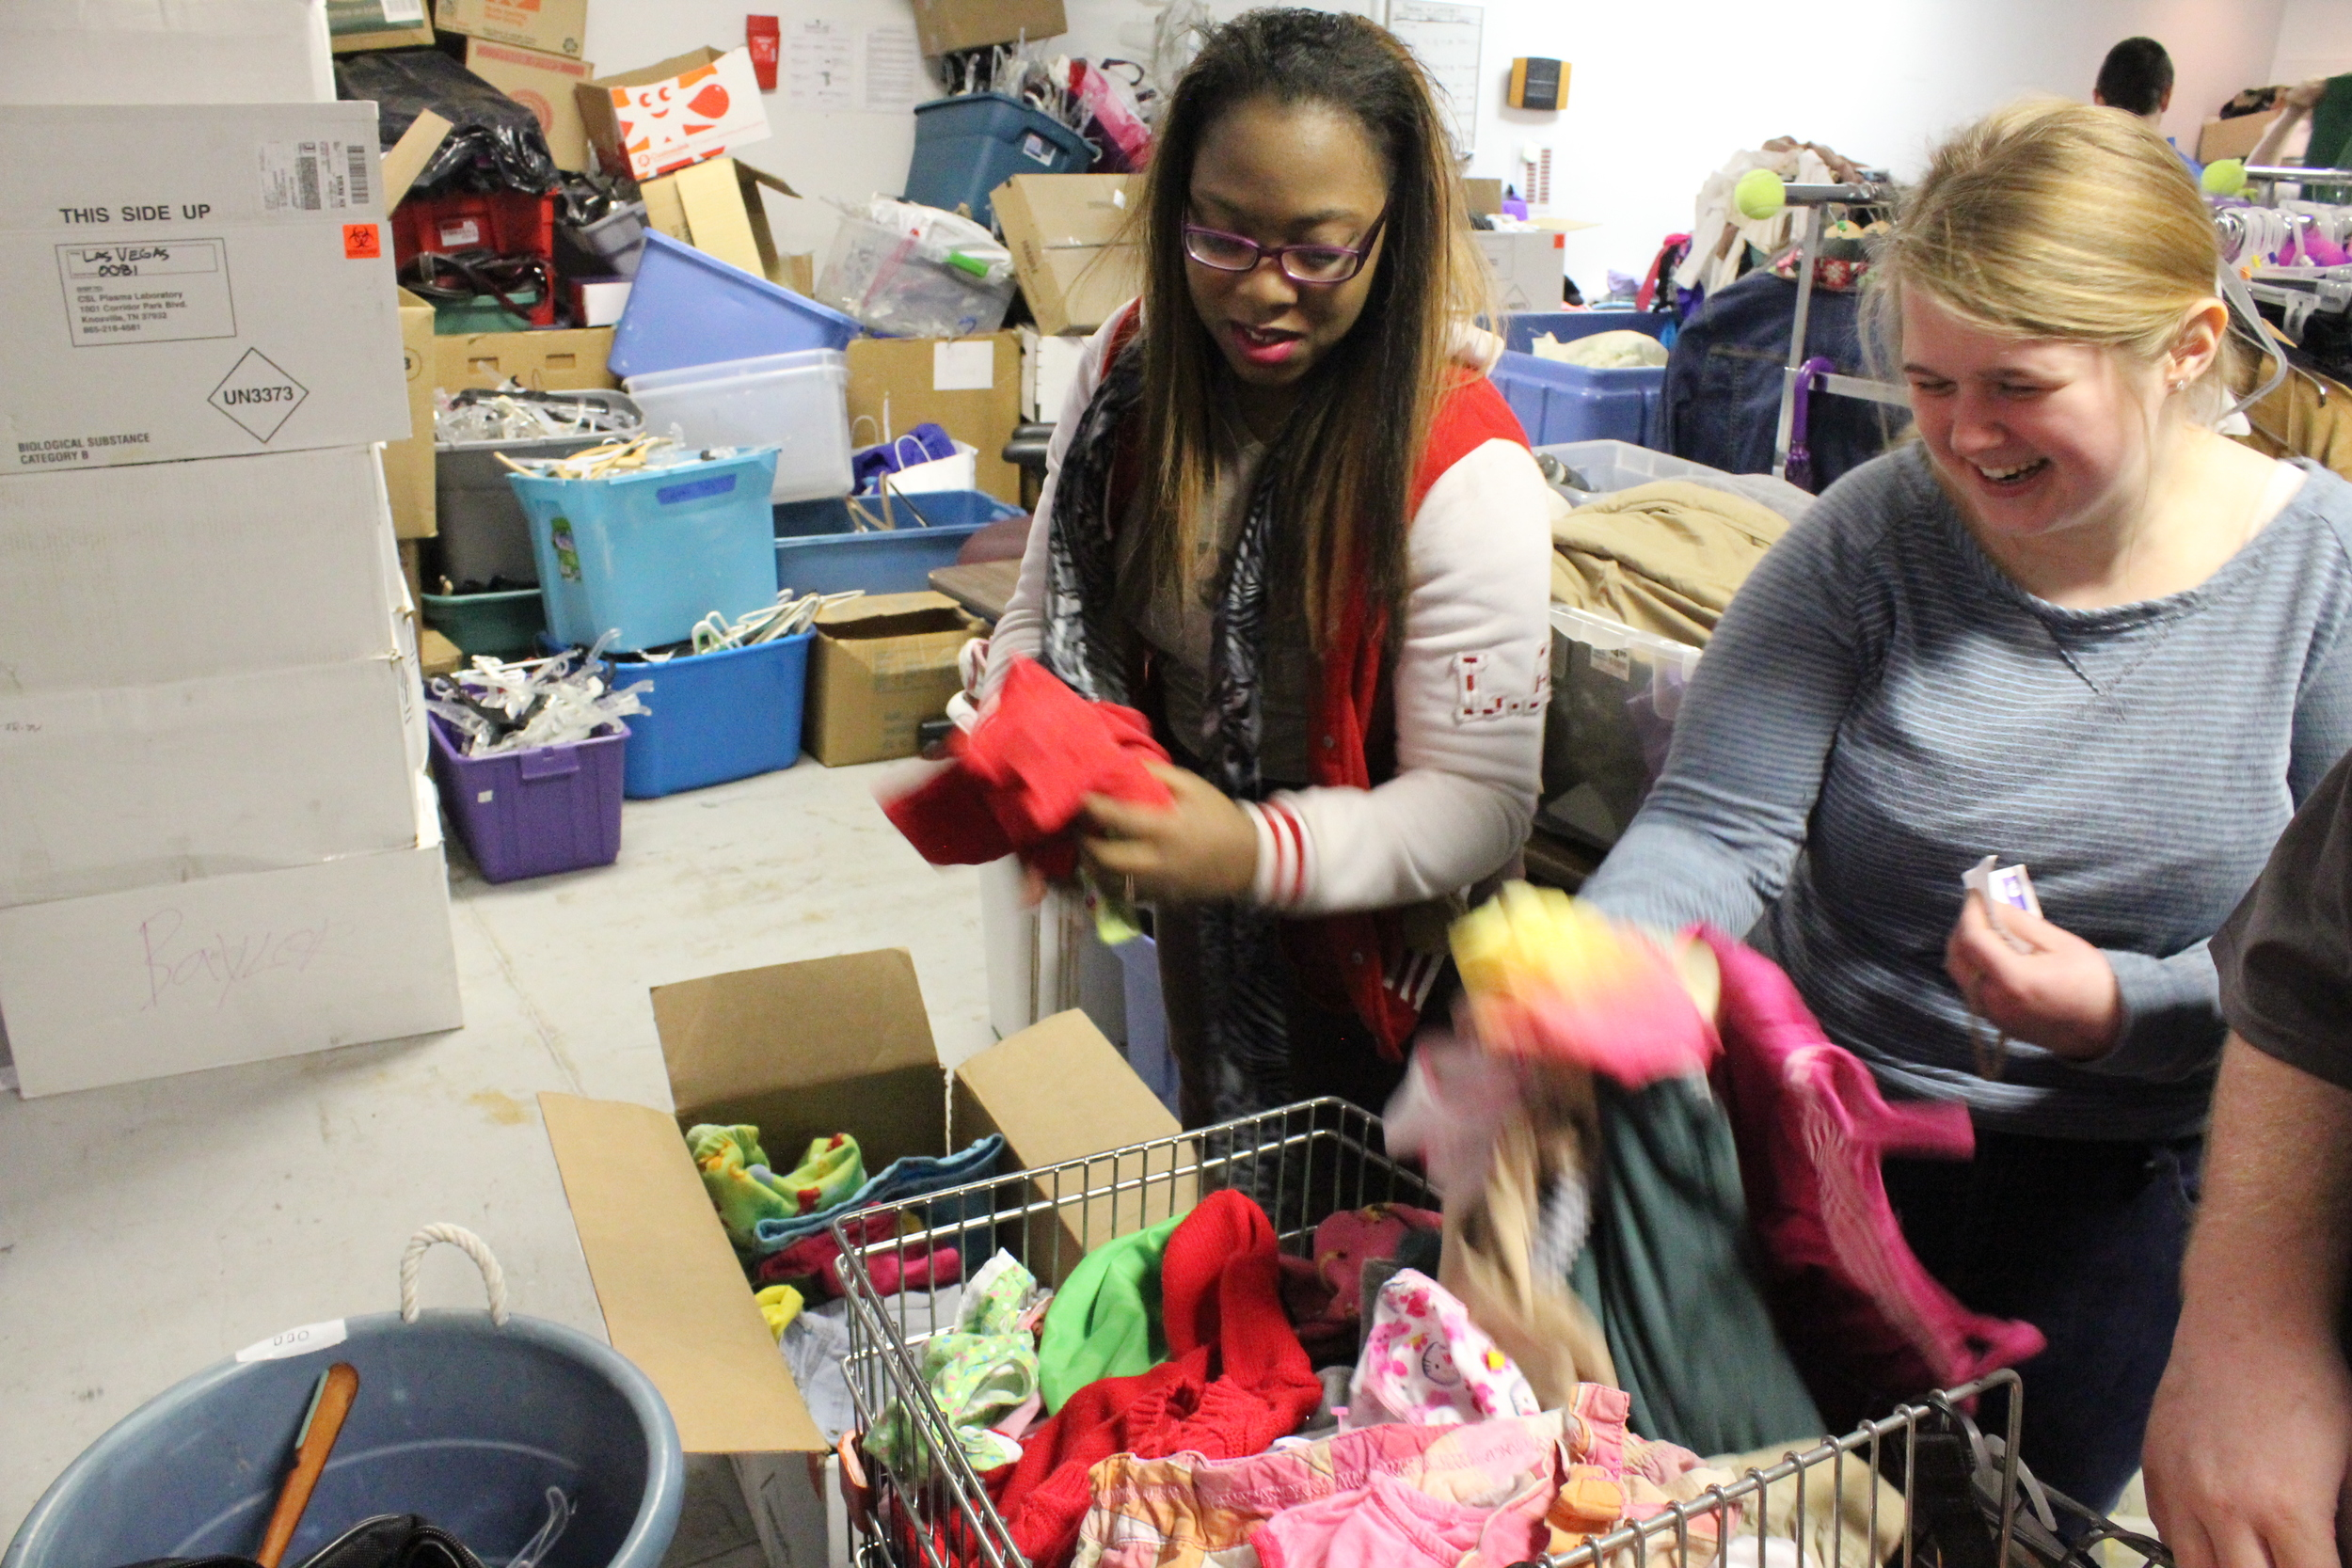 """Mirissa Lee (left) is a Work Adjustment client at Goodwill. She works side-by-side with CDC student, Emma McKinney. Mirissa helps Emma identify the tag colors. """"We like to talk when we work,"""" Mirissa said. """"We laugh a lot."""" With a giggle, Emma added, """"Especially around underwear!"""""""